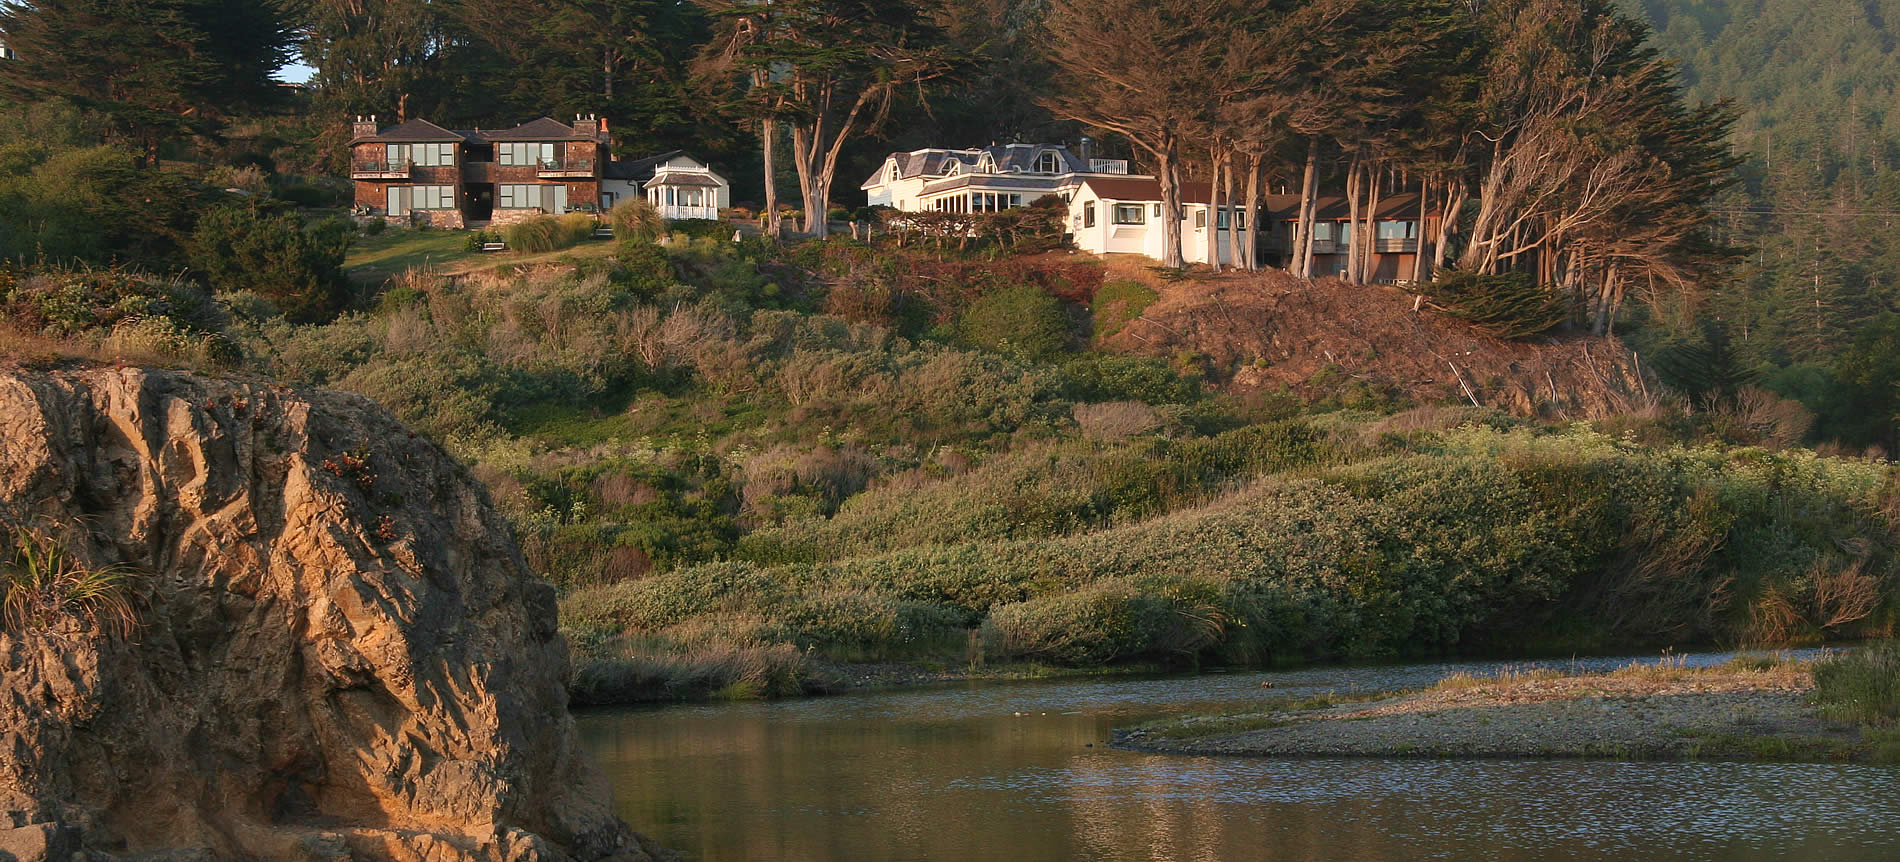 mendocino coast bed and breakfast perched on a hill overlooking ocean